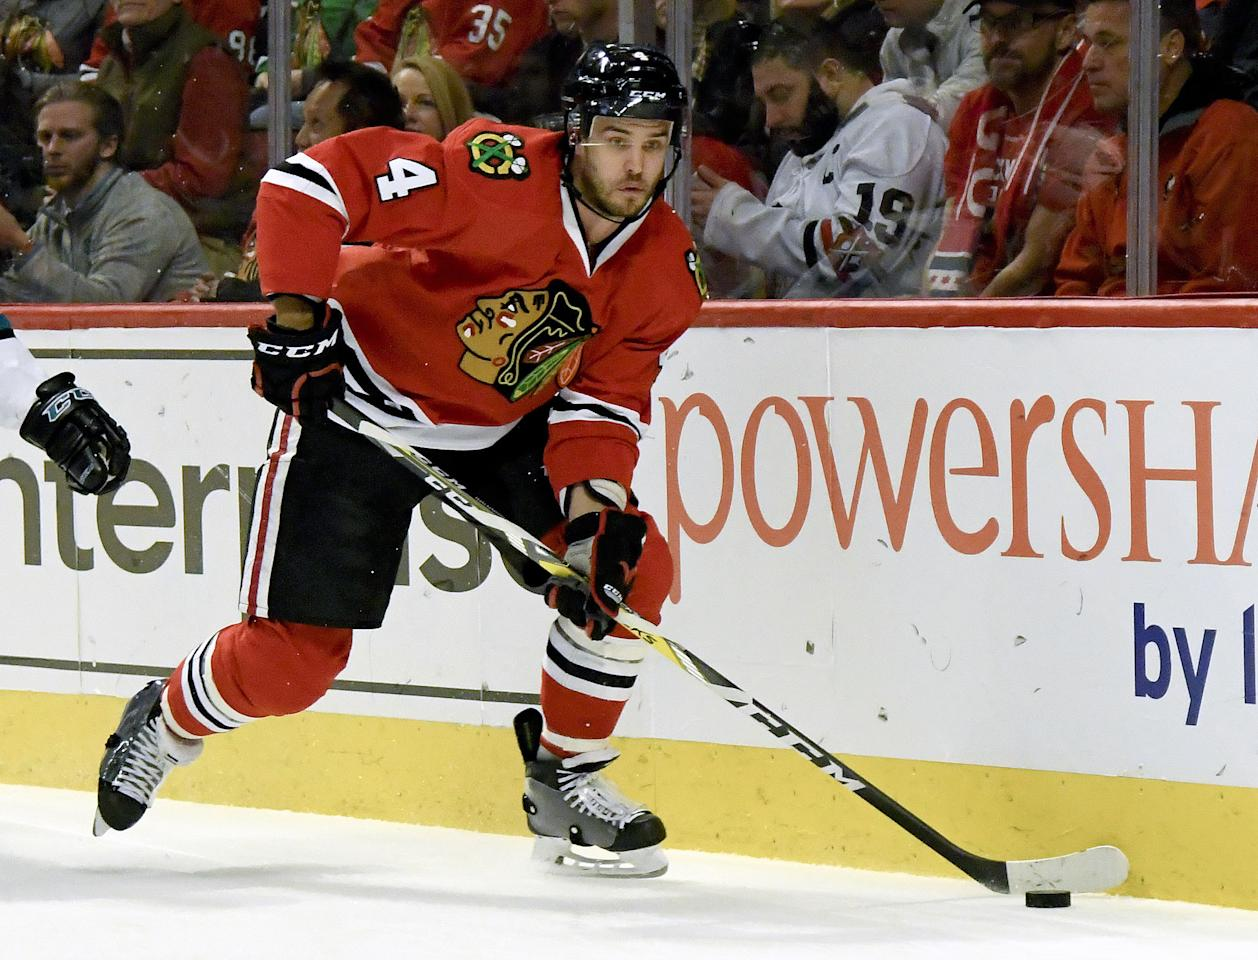 FILE - In this Dec. 18, 2016, file photo, Chicago Blackhawks defenseman Niklas Hjalmarsson (4), of Sweden, skates with the the puck during the first period of an NHL hockey game against the San Jose Sharks, in Chicago. The Arizona Coyotes have acquired Hjalmarsson in a trade with the Blackhawks. The 30-year-old Hjalmarsson had spent his entire 10-year career with Chicago, helping the Blackhawks to three Stanley Cup titles. (AP Photo/Matt Marton)